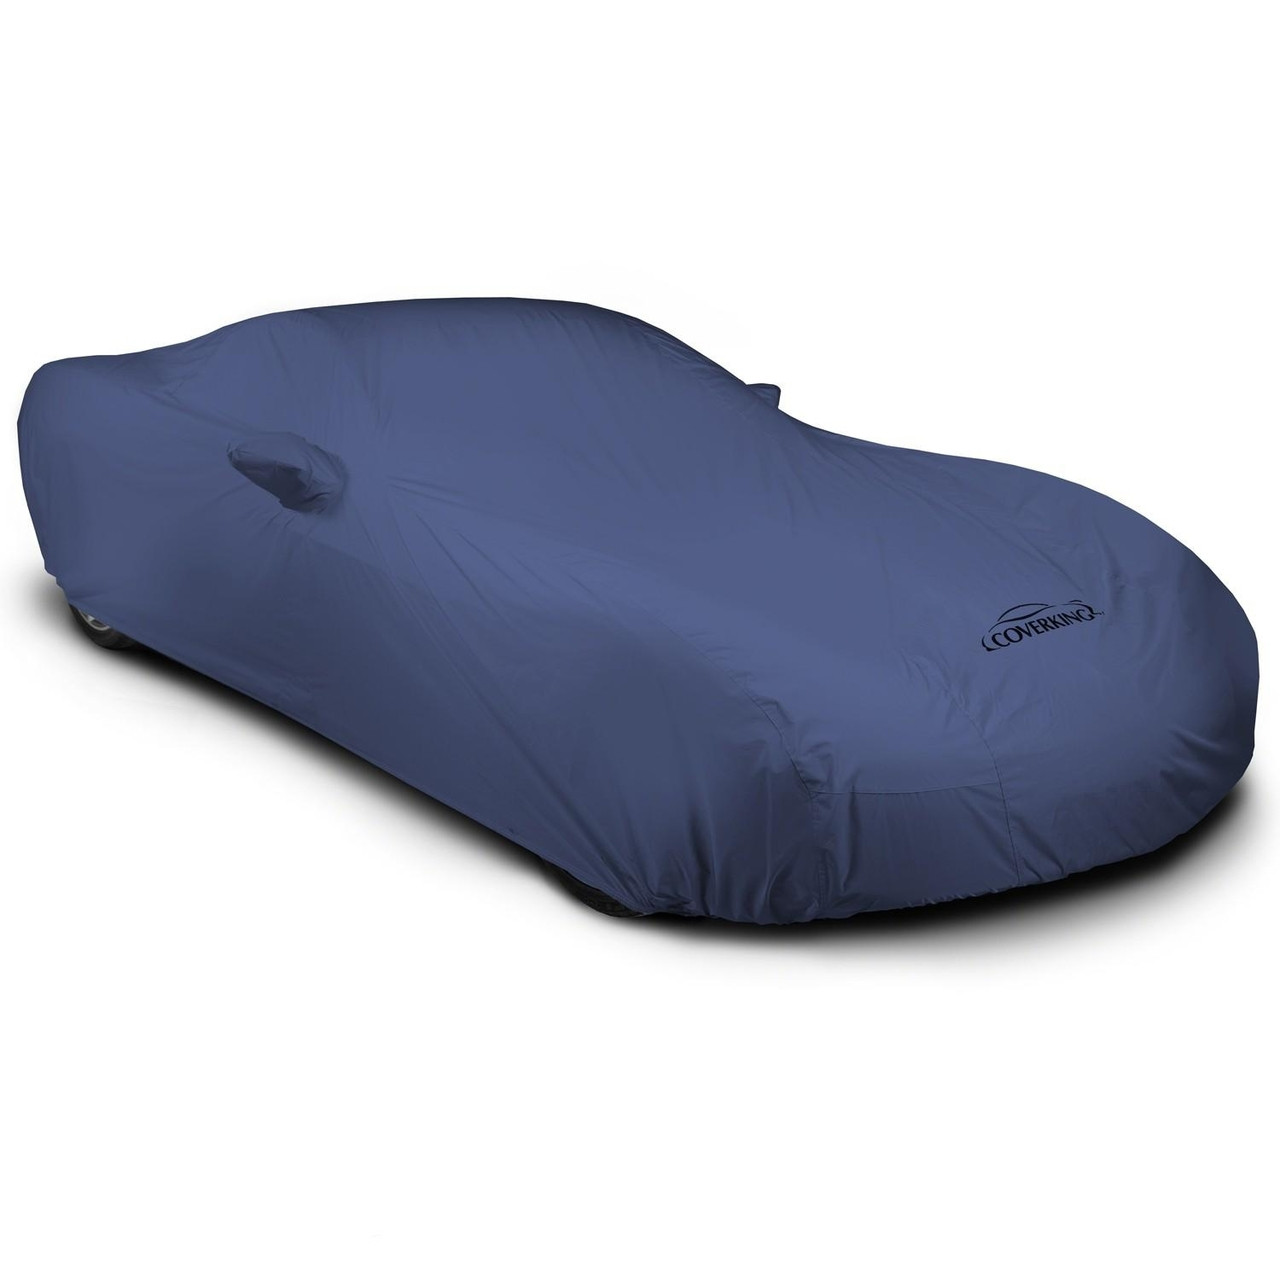 Corvette Outdoor Car Cover blue